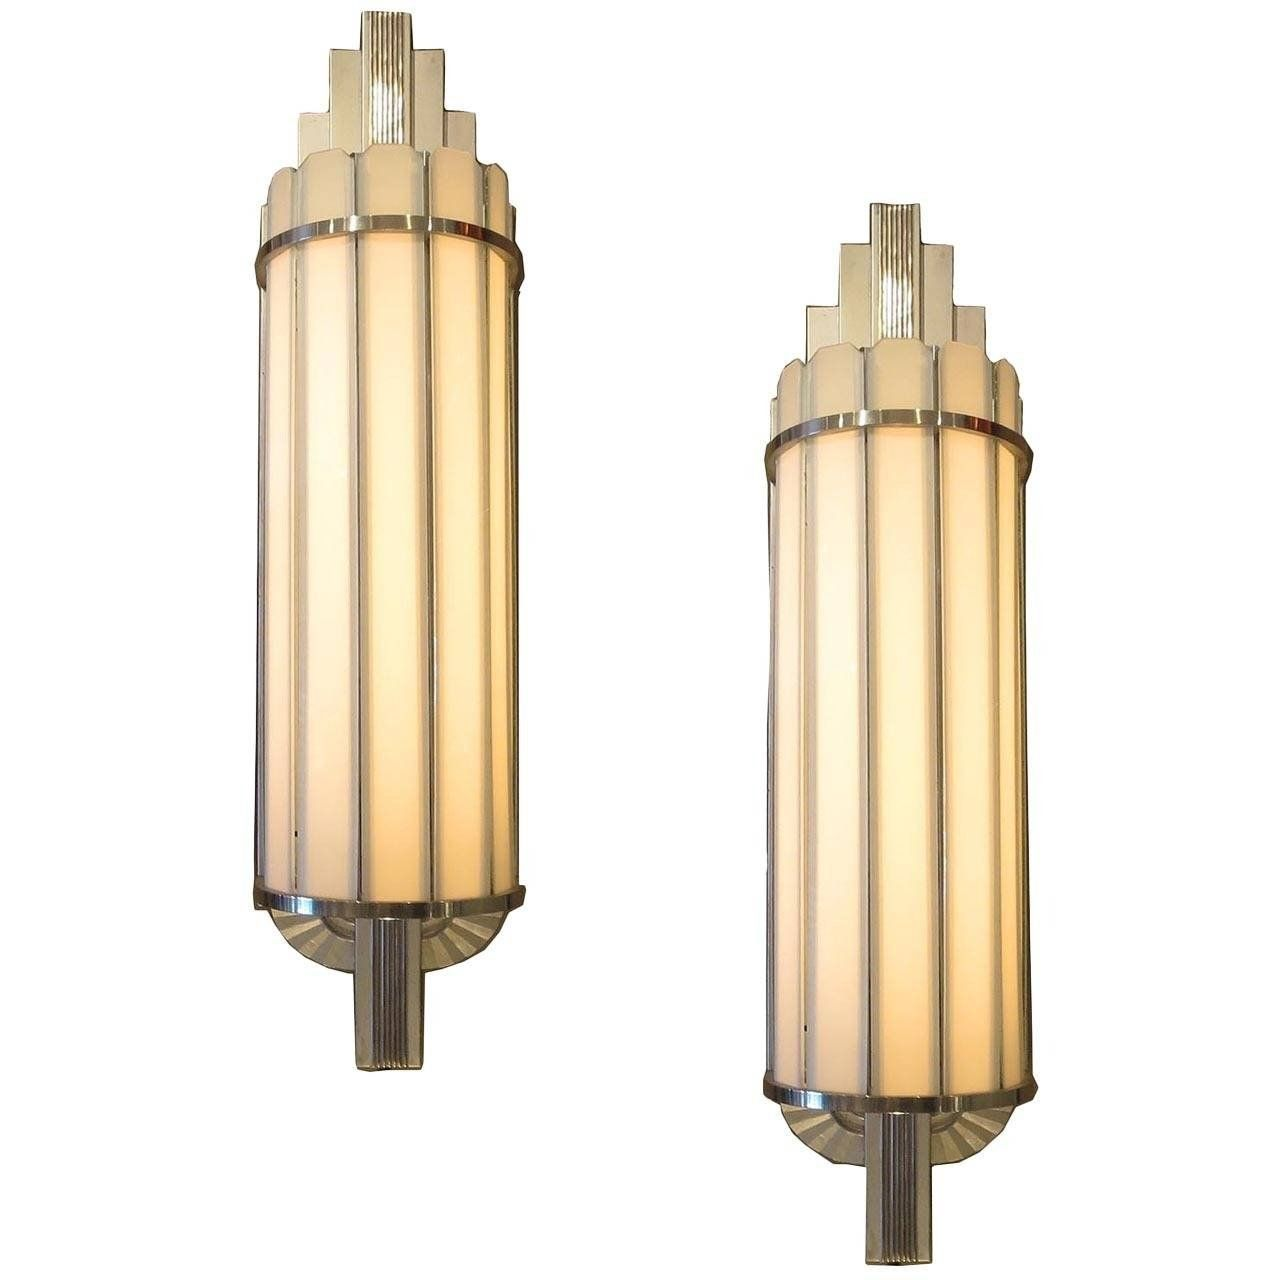 Art deco large theater wall sconces at stdibs for measurements